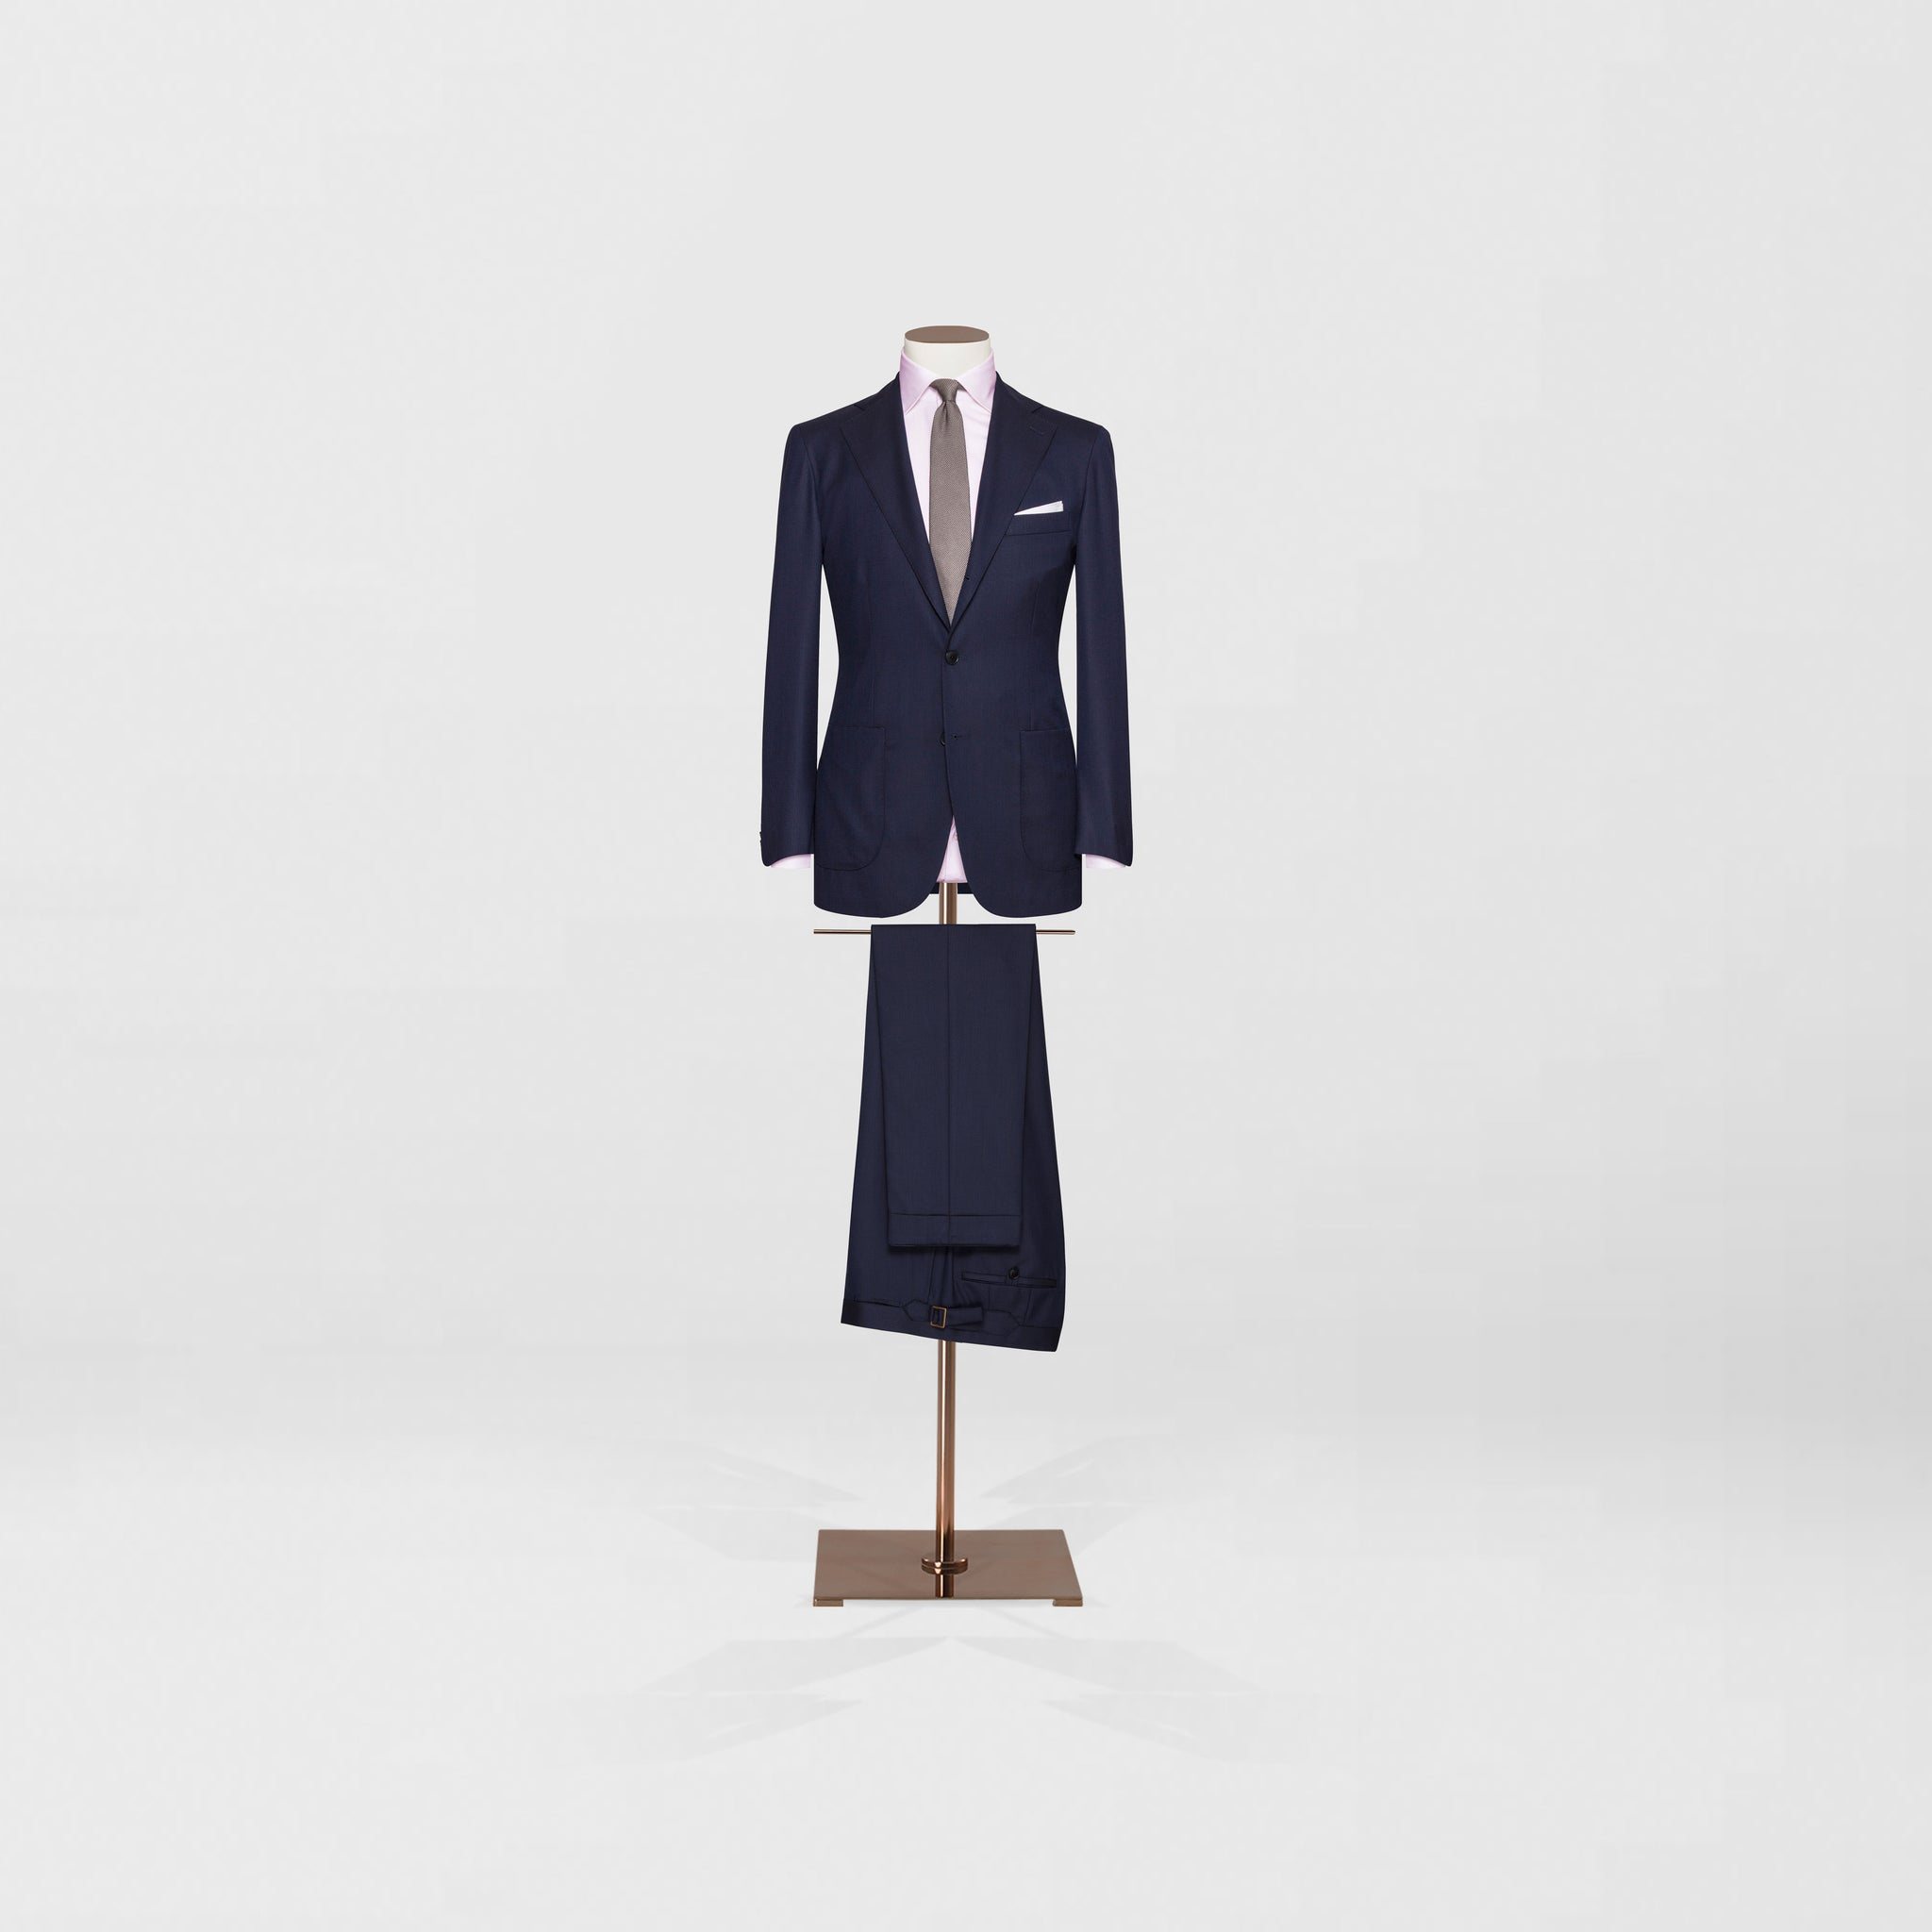 Notch Lapel two piece | Navy S130 - Tailor & Co Sydney.